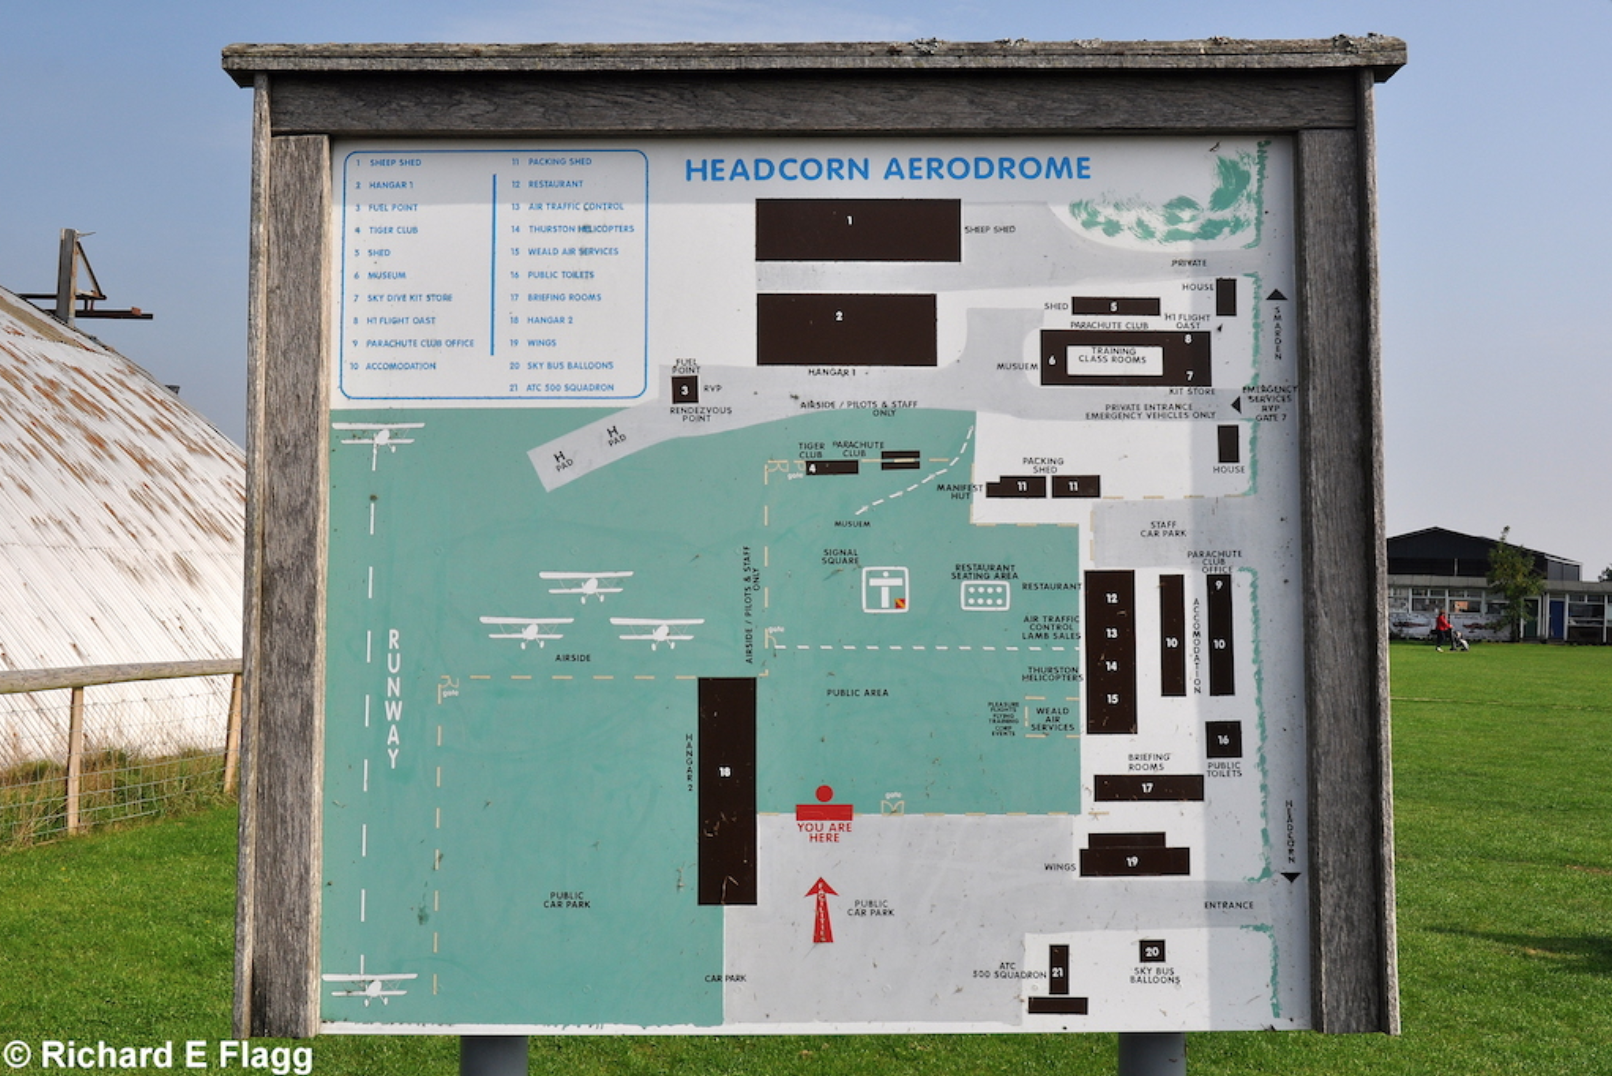 004Airfield Map - 29 September 2013.png